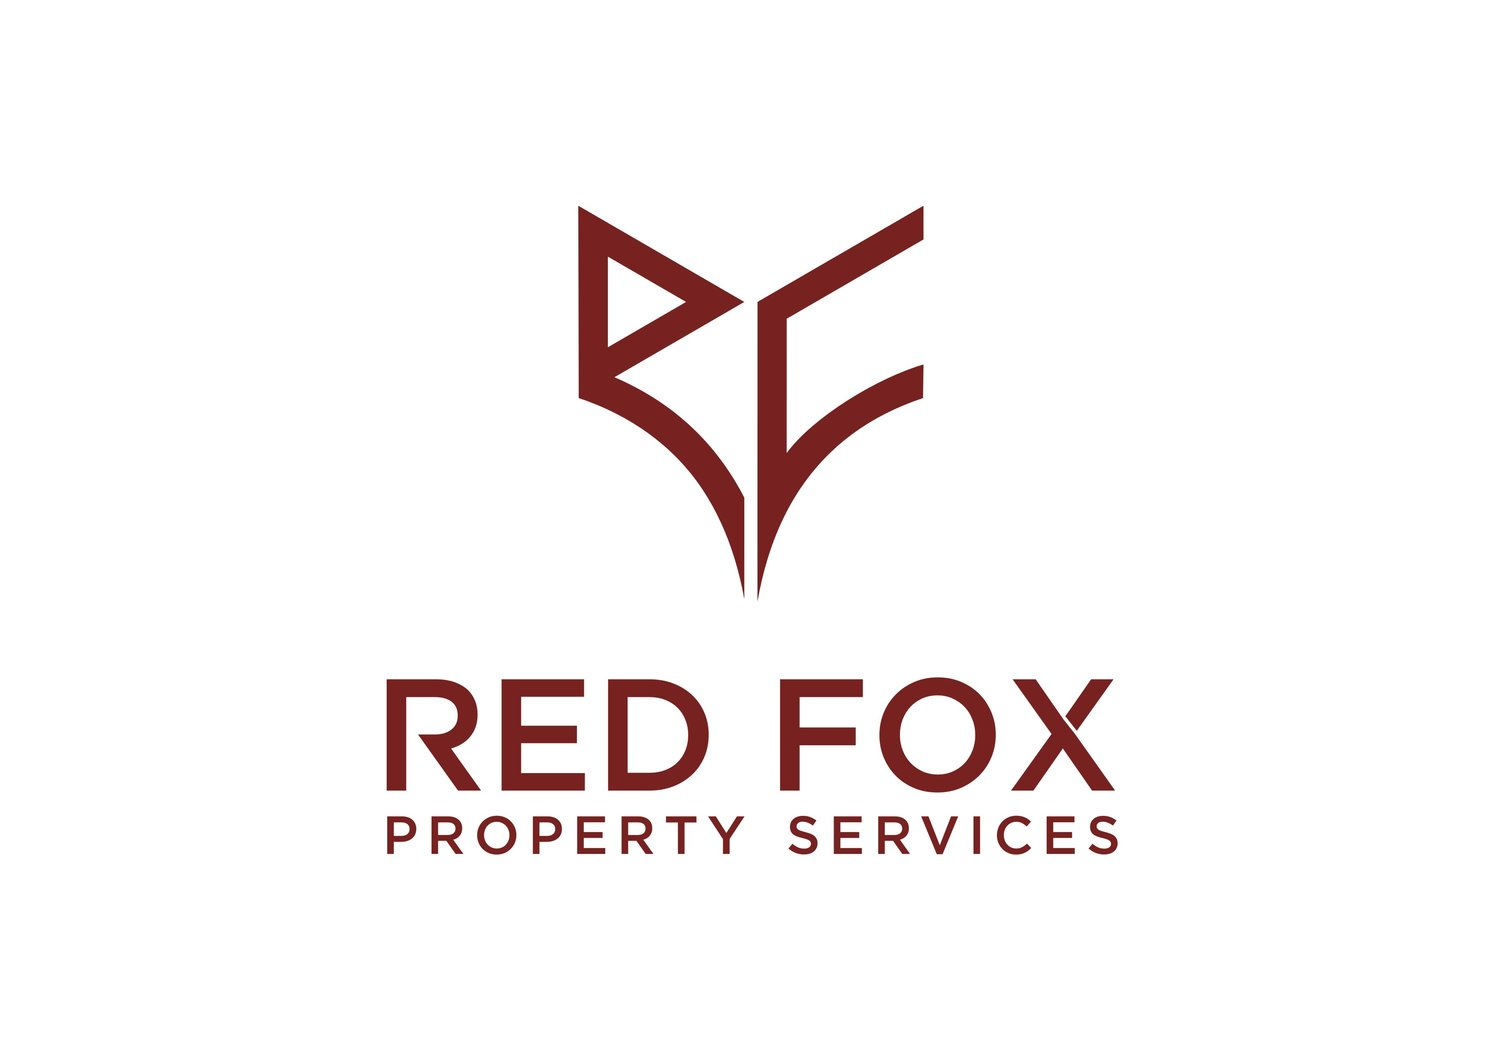 Red Fox Property Services